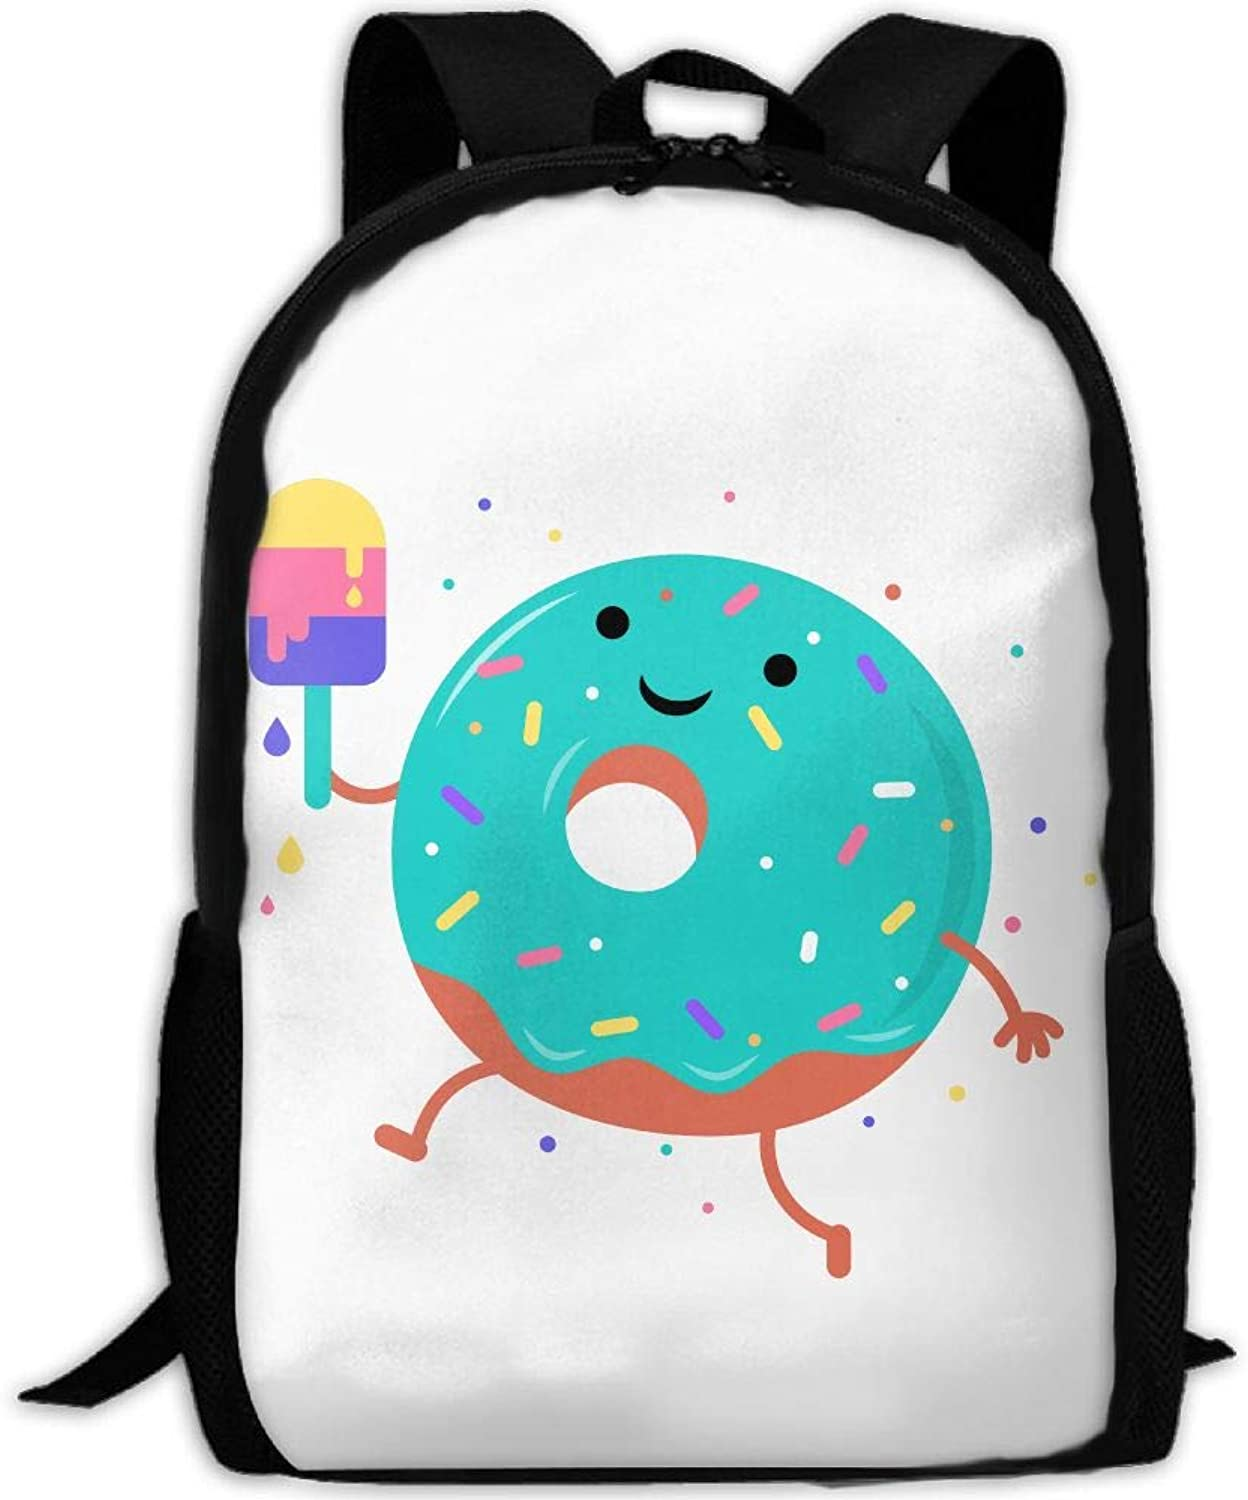 Adult Backpack Cartoon Doughnut College Daypack Oxford Bag Unisex Business Travel Sports Bag with Adjustable Strap